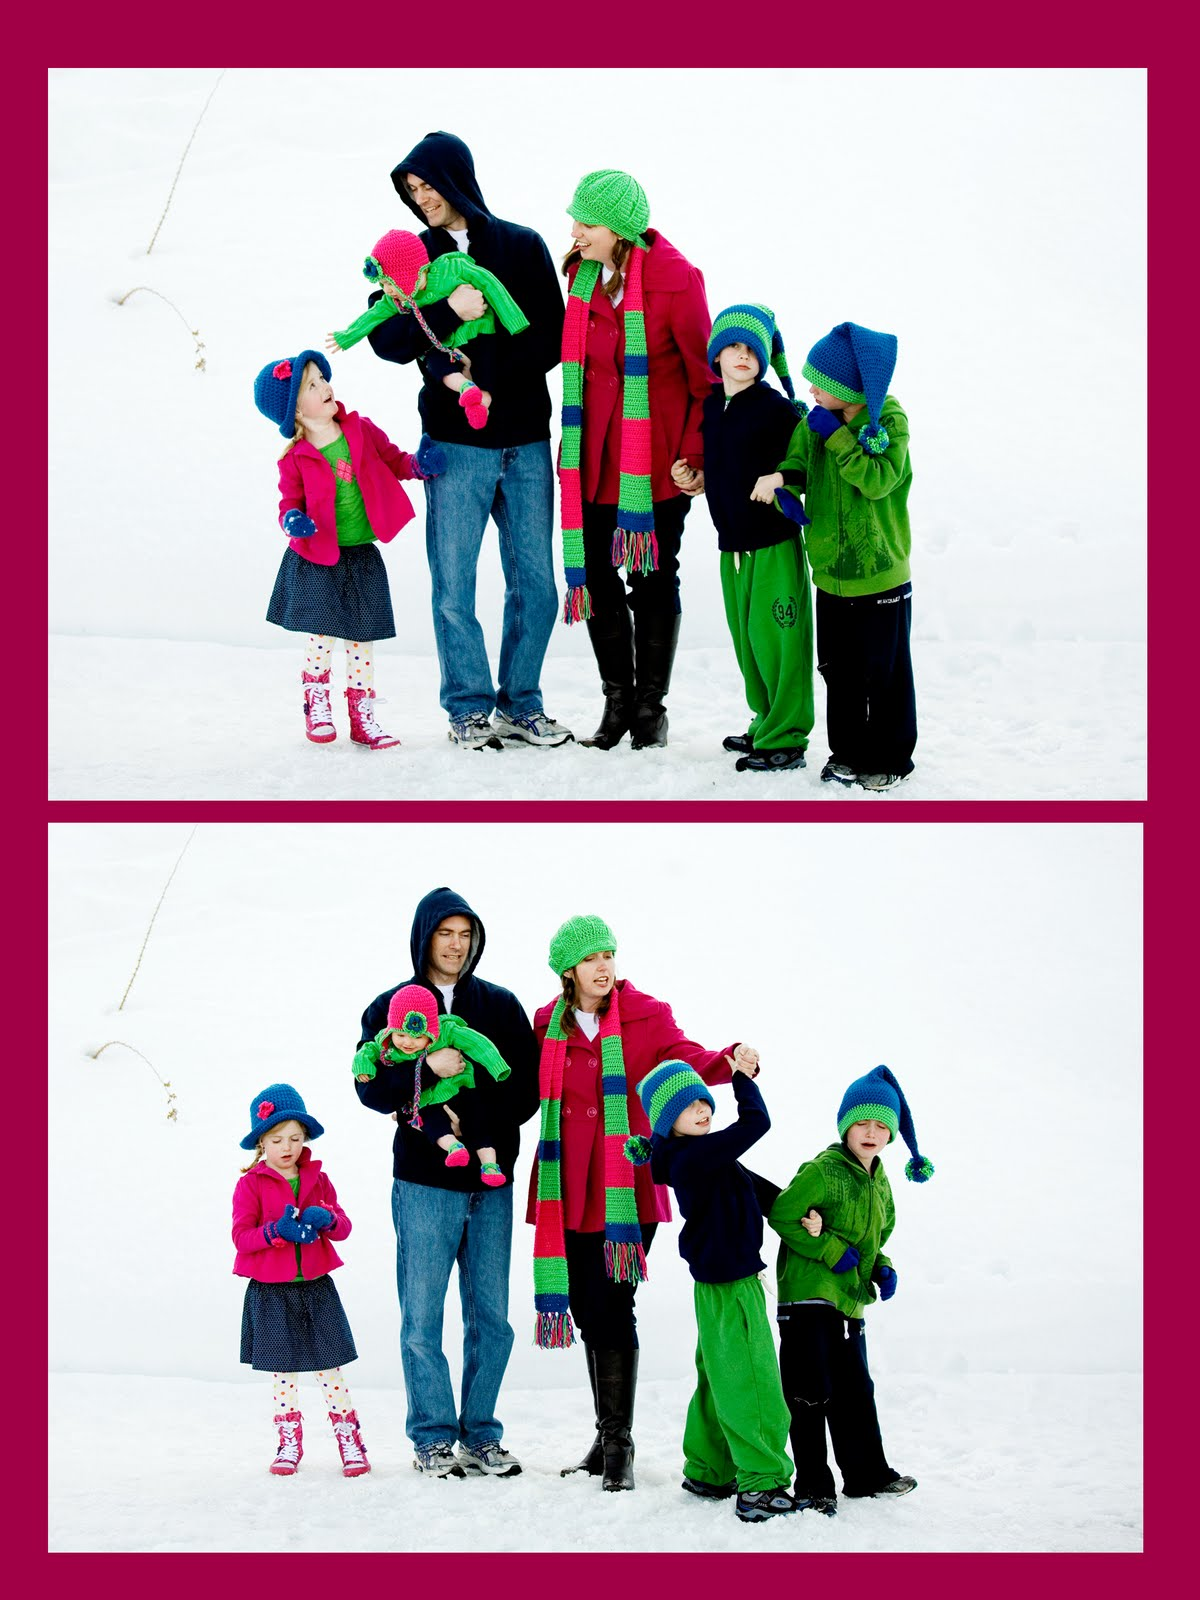 My Family In The Snow